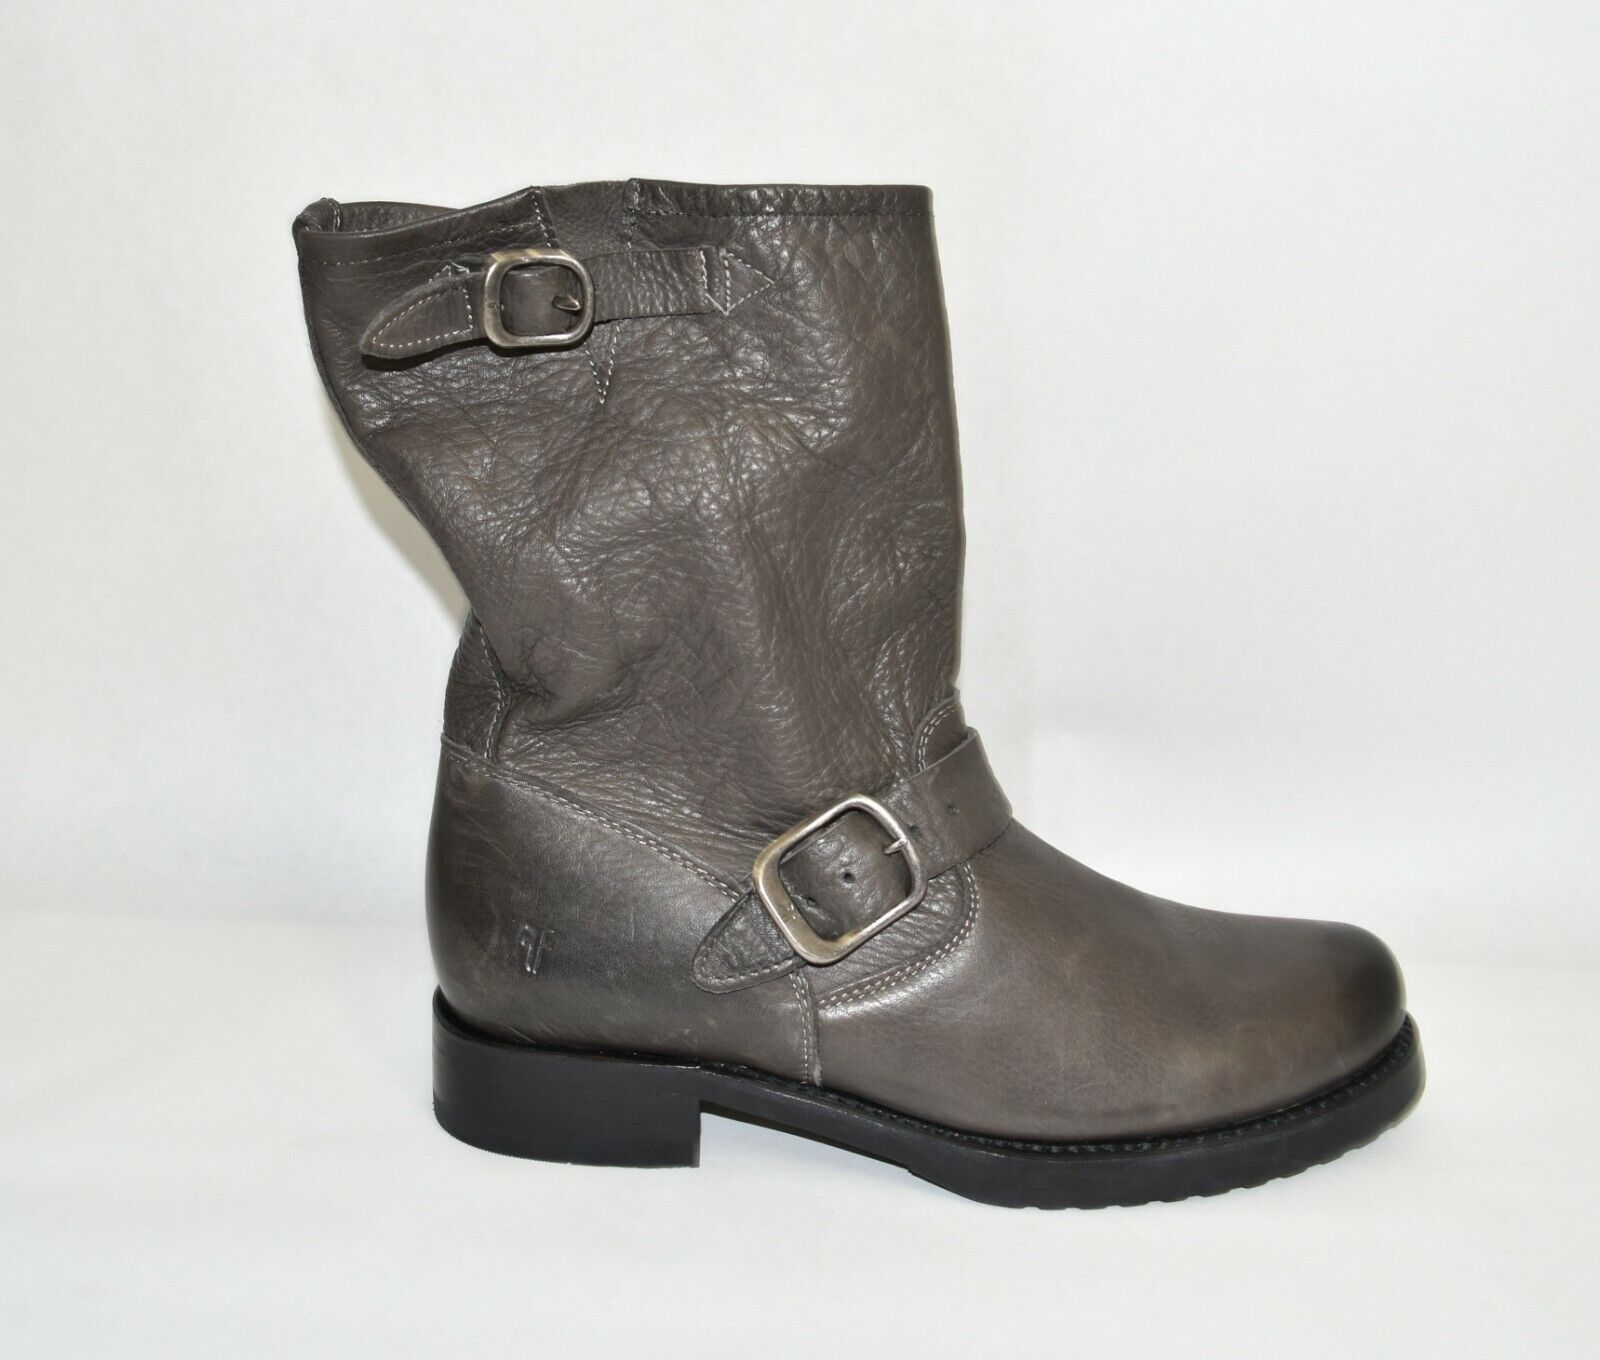 New! Frye Veronica Short Slouchy Boot Smoke Gray Leather Size 7 76509 T46